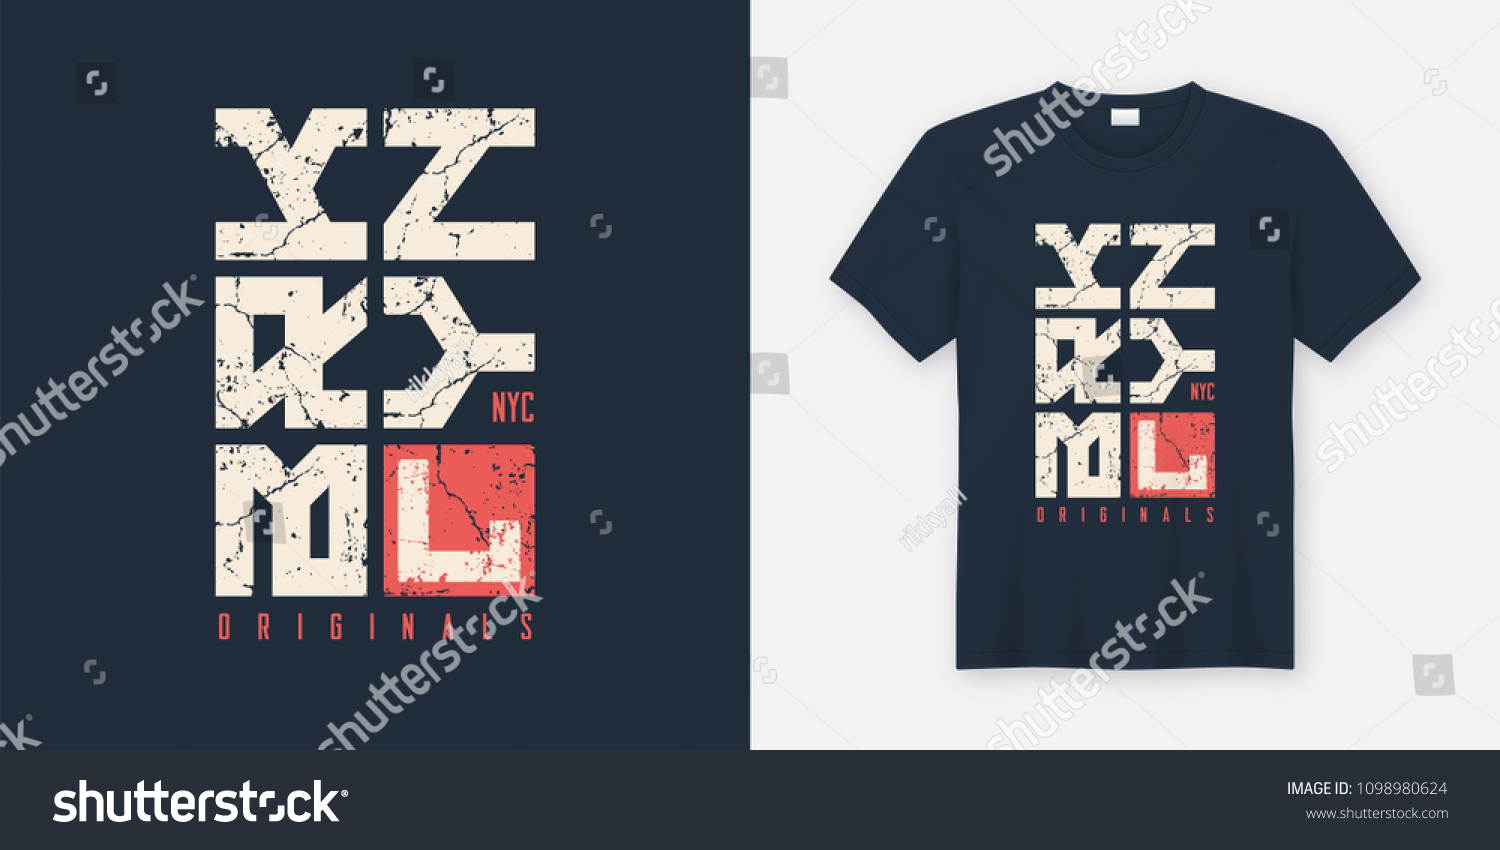 96d415ab Brooklyn New York textured t-shirt and apparel design, typography, print,  vector